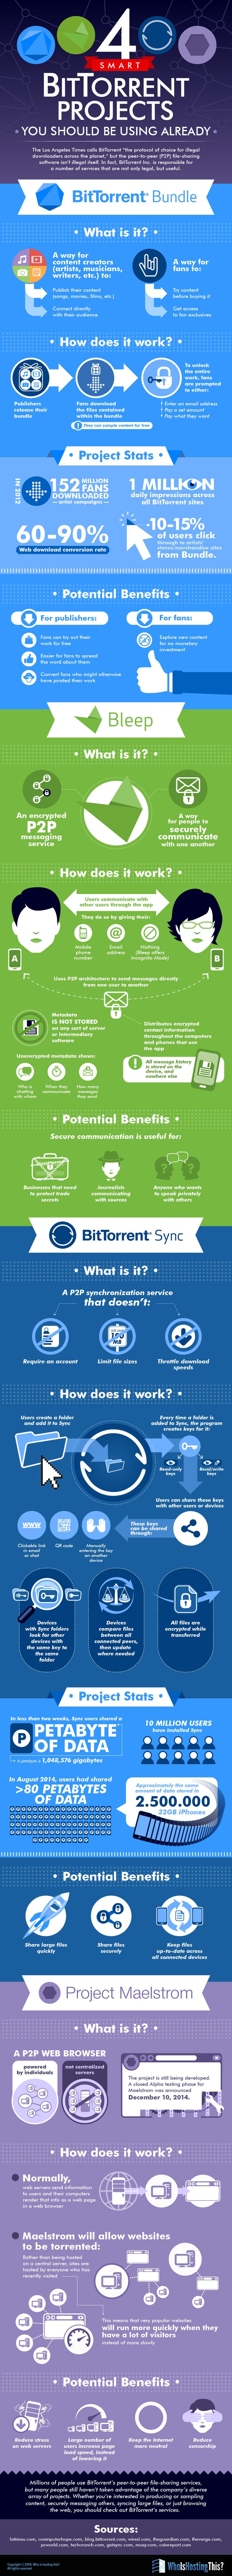 4 Smart BitTorrent Projects You Should Be Using Already #infographic #BitTorrent #Internet